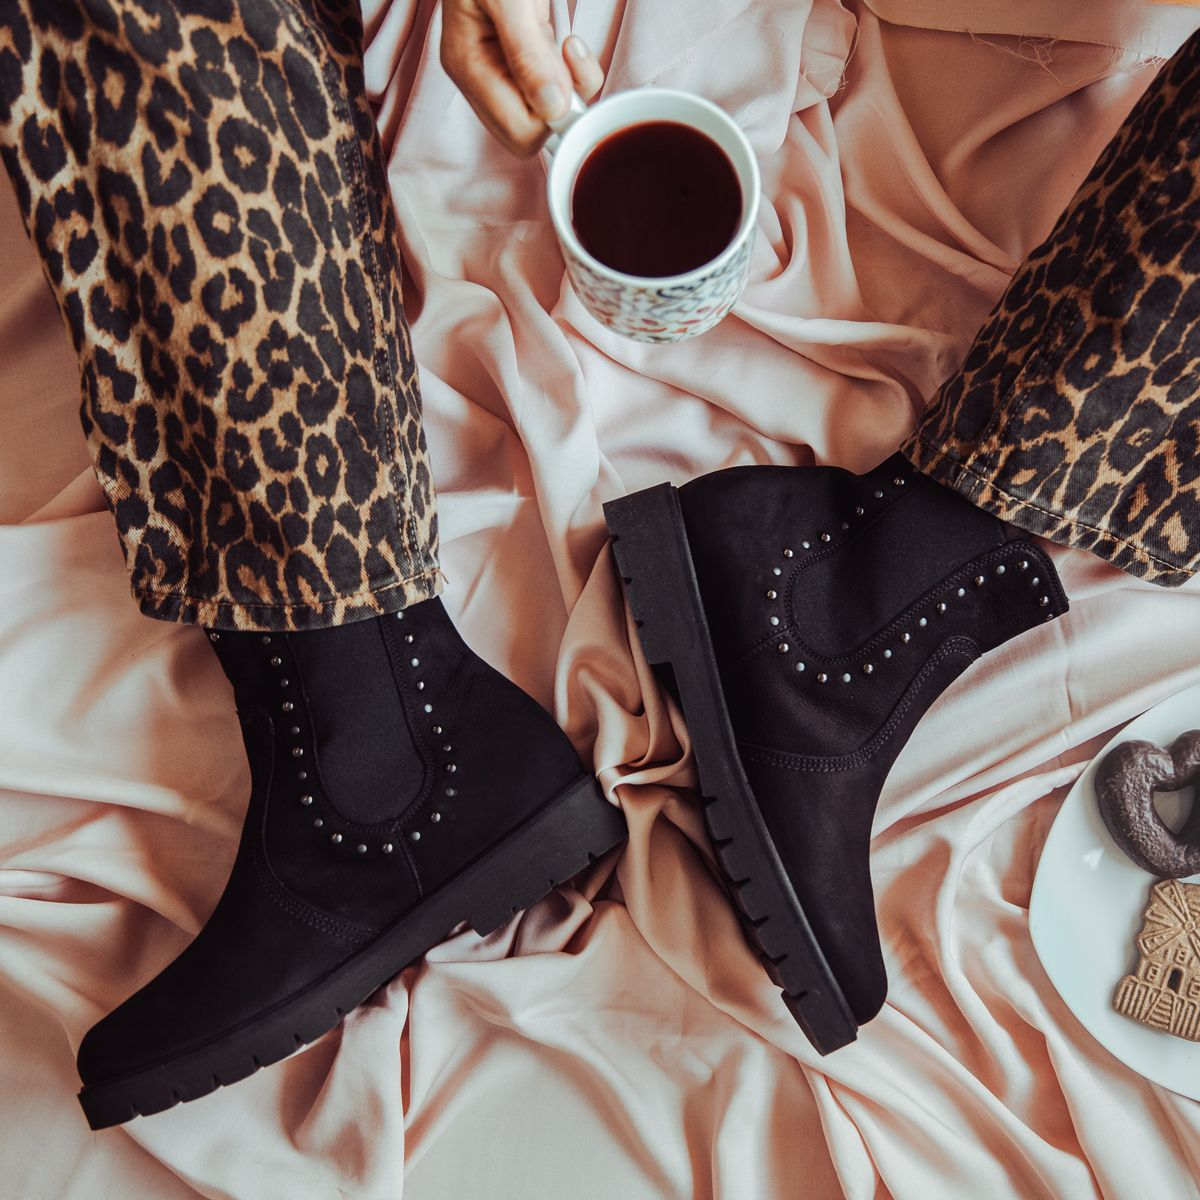 Black coffee and black shoes what else could you wish for